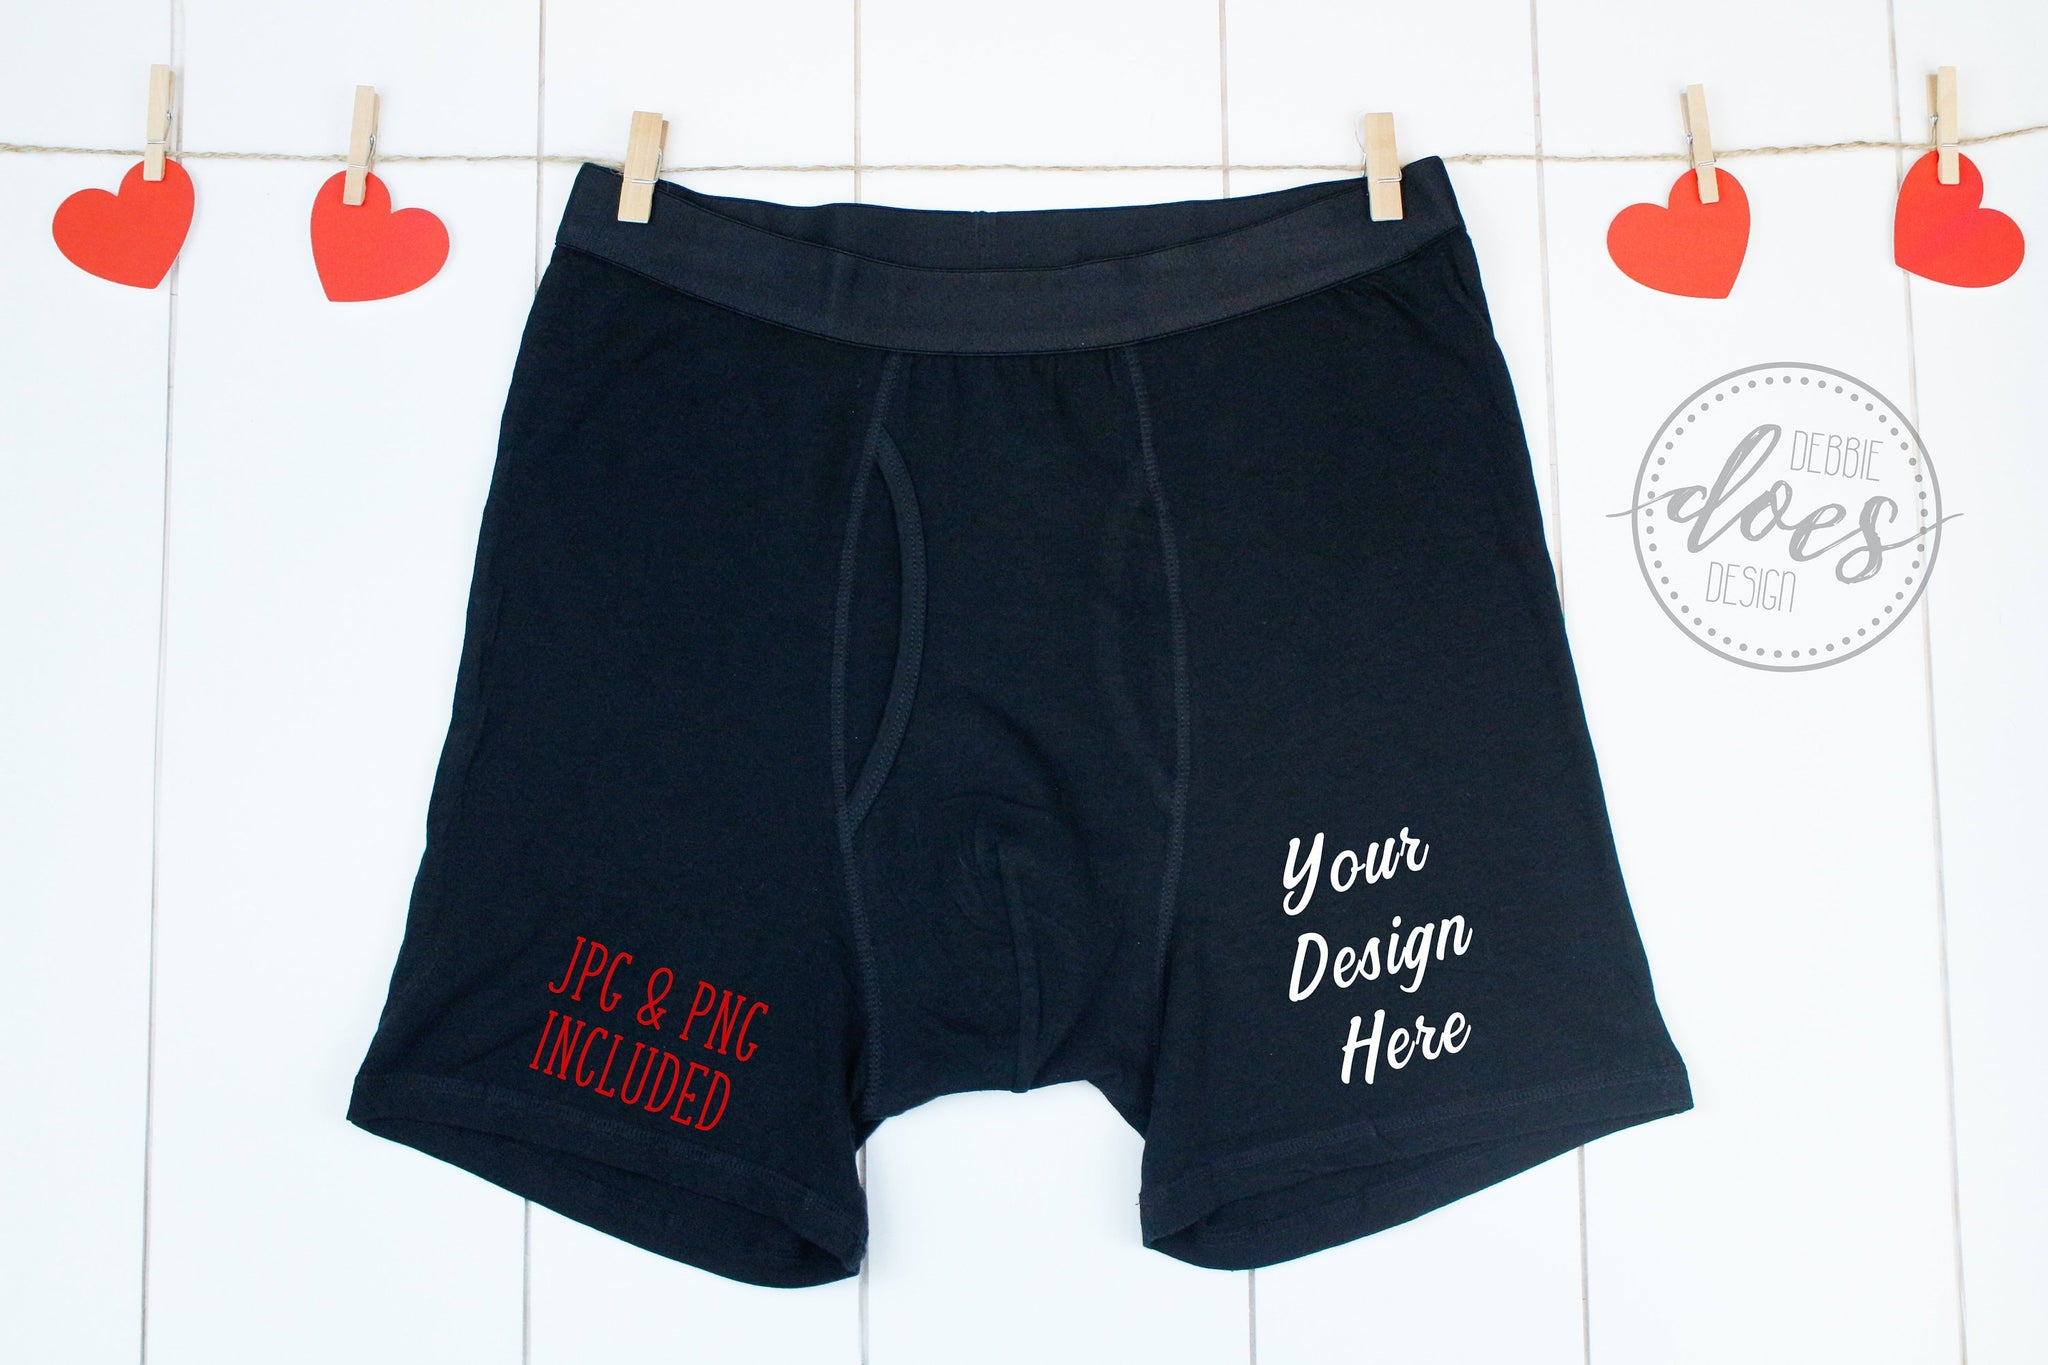 Black Boxer Briefs Mockup on Clothesline with Hearts | Valentines | Blank Mockup Photo Download